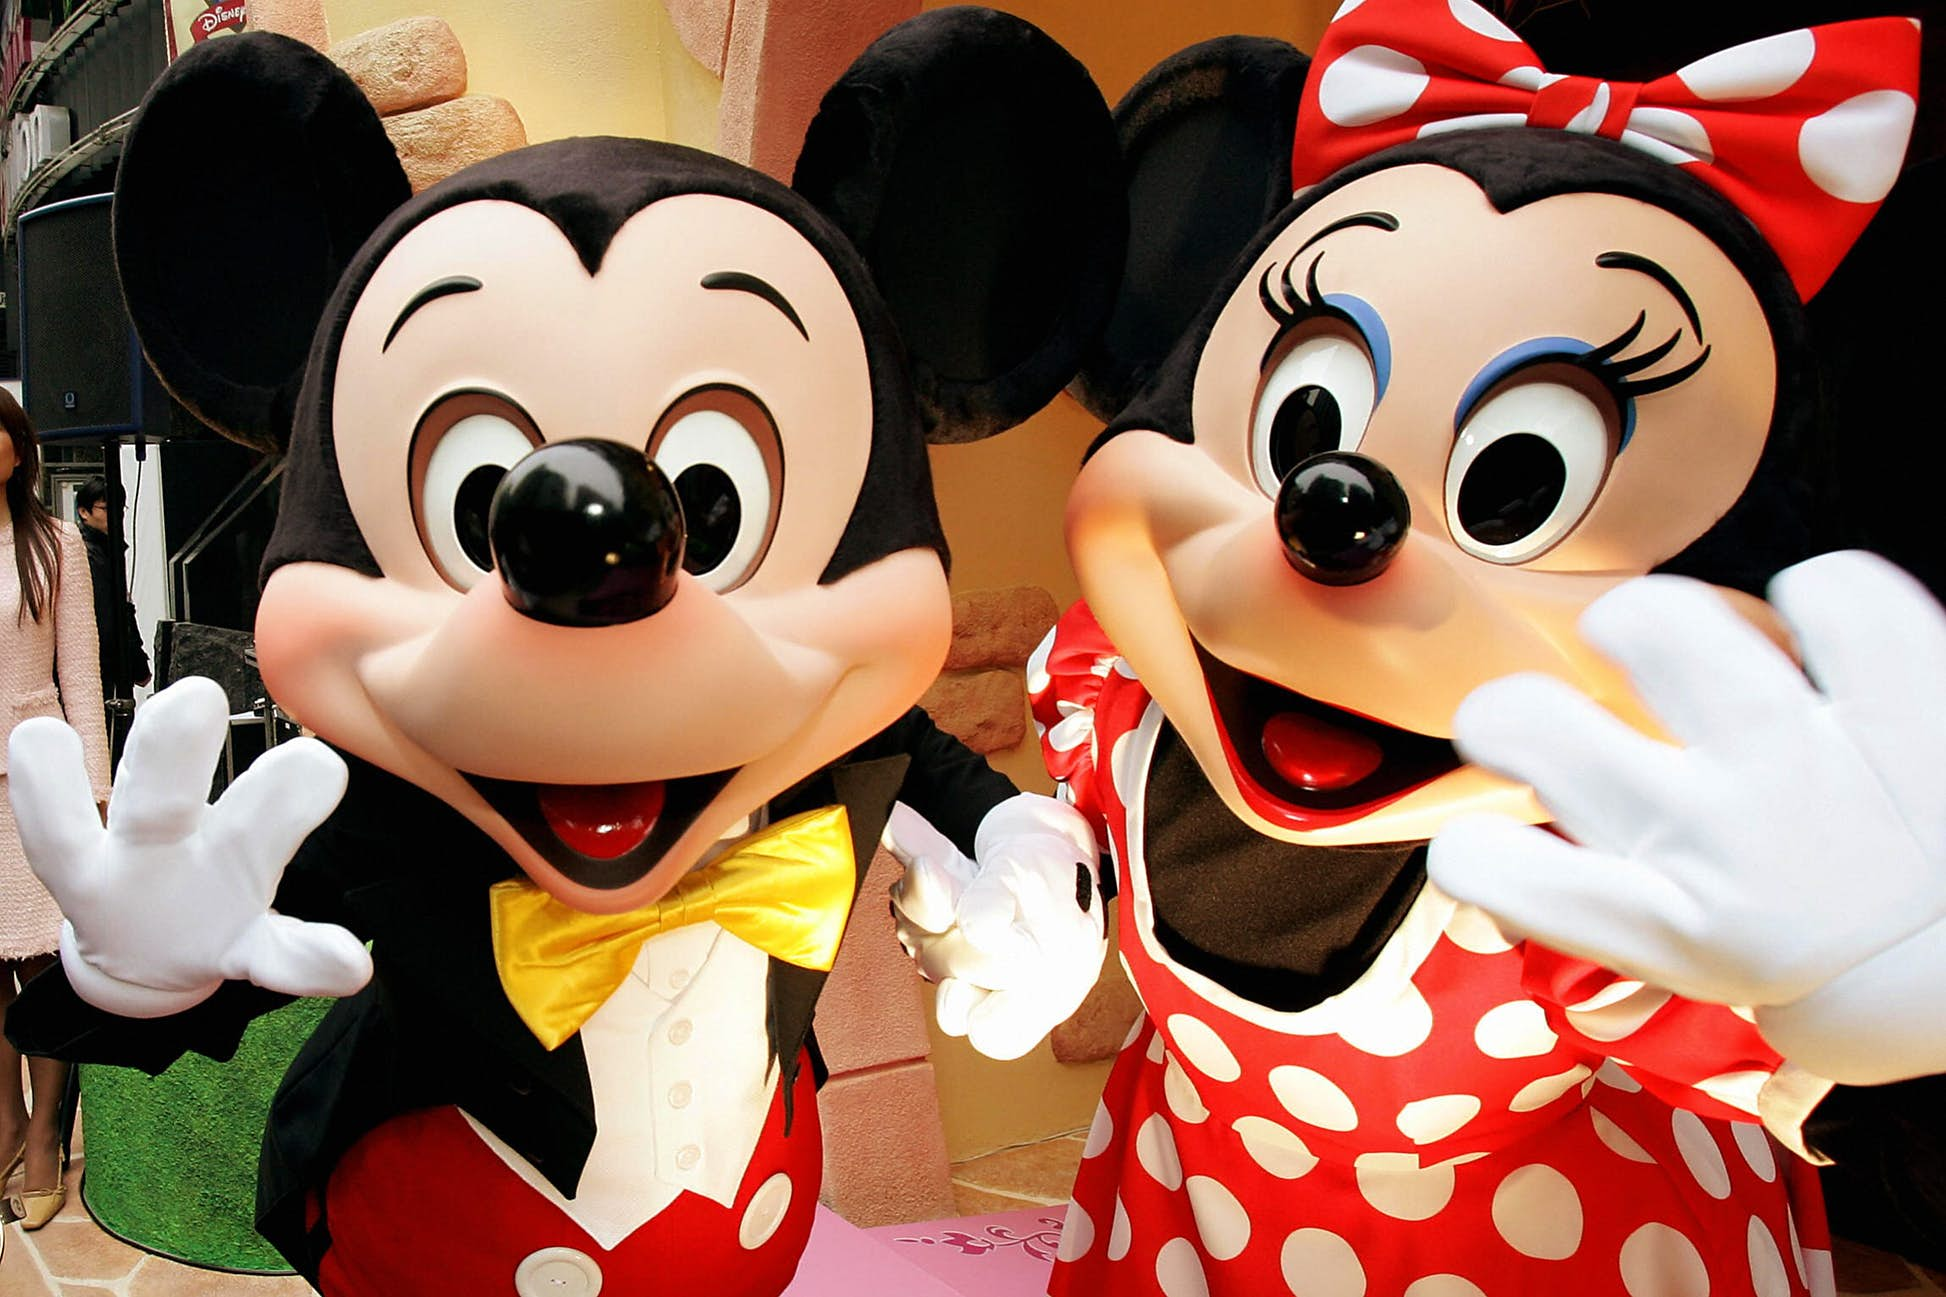 Visitors won't be able to meet and greet the Disney characters for the moment © Yoshikazu Tsuno/AFP via Getty Images